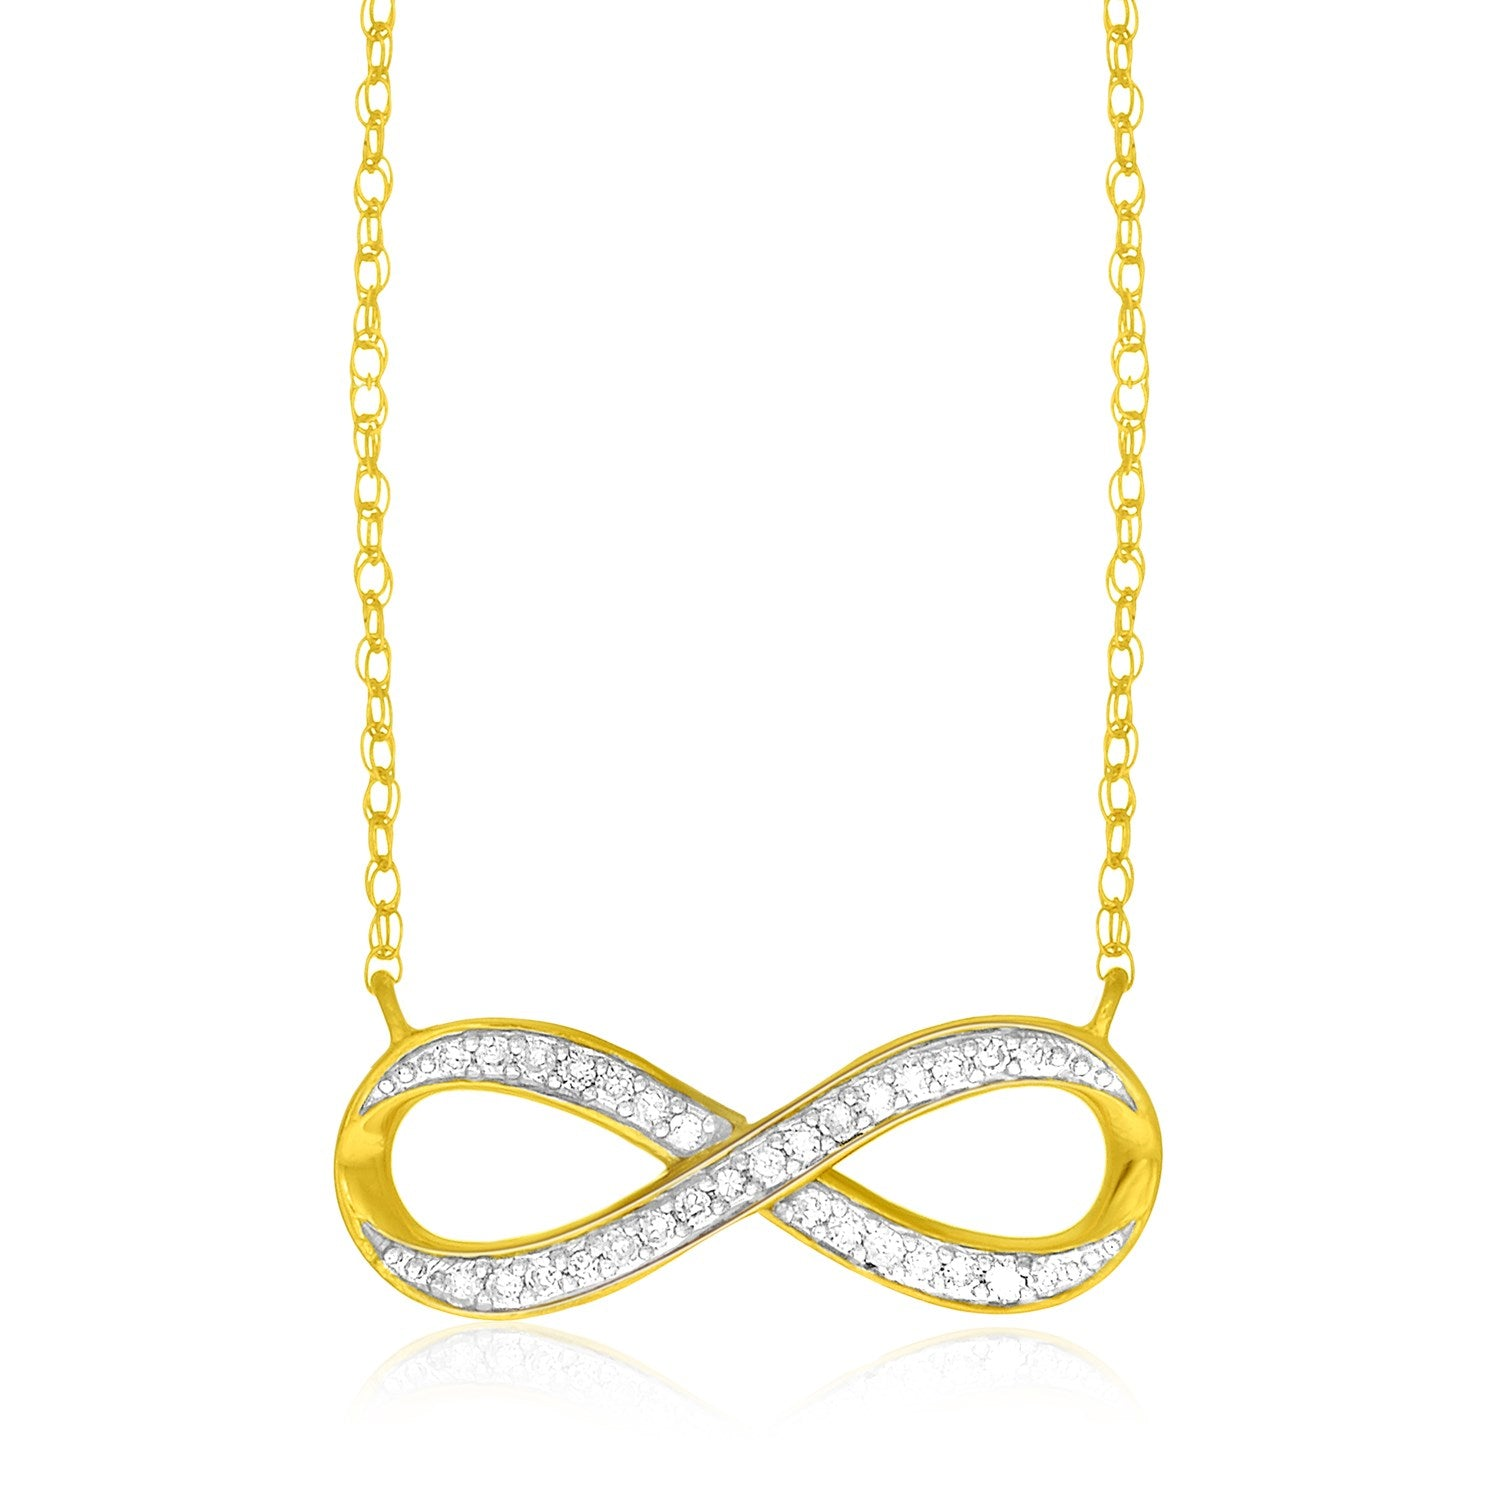 14K Yellow Gold Infinity Chain Necklace with Diamonds